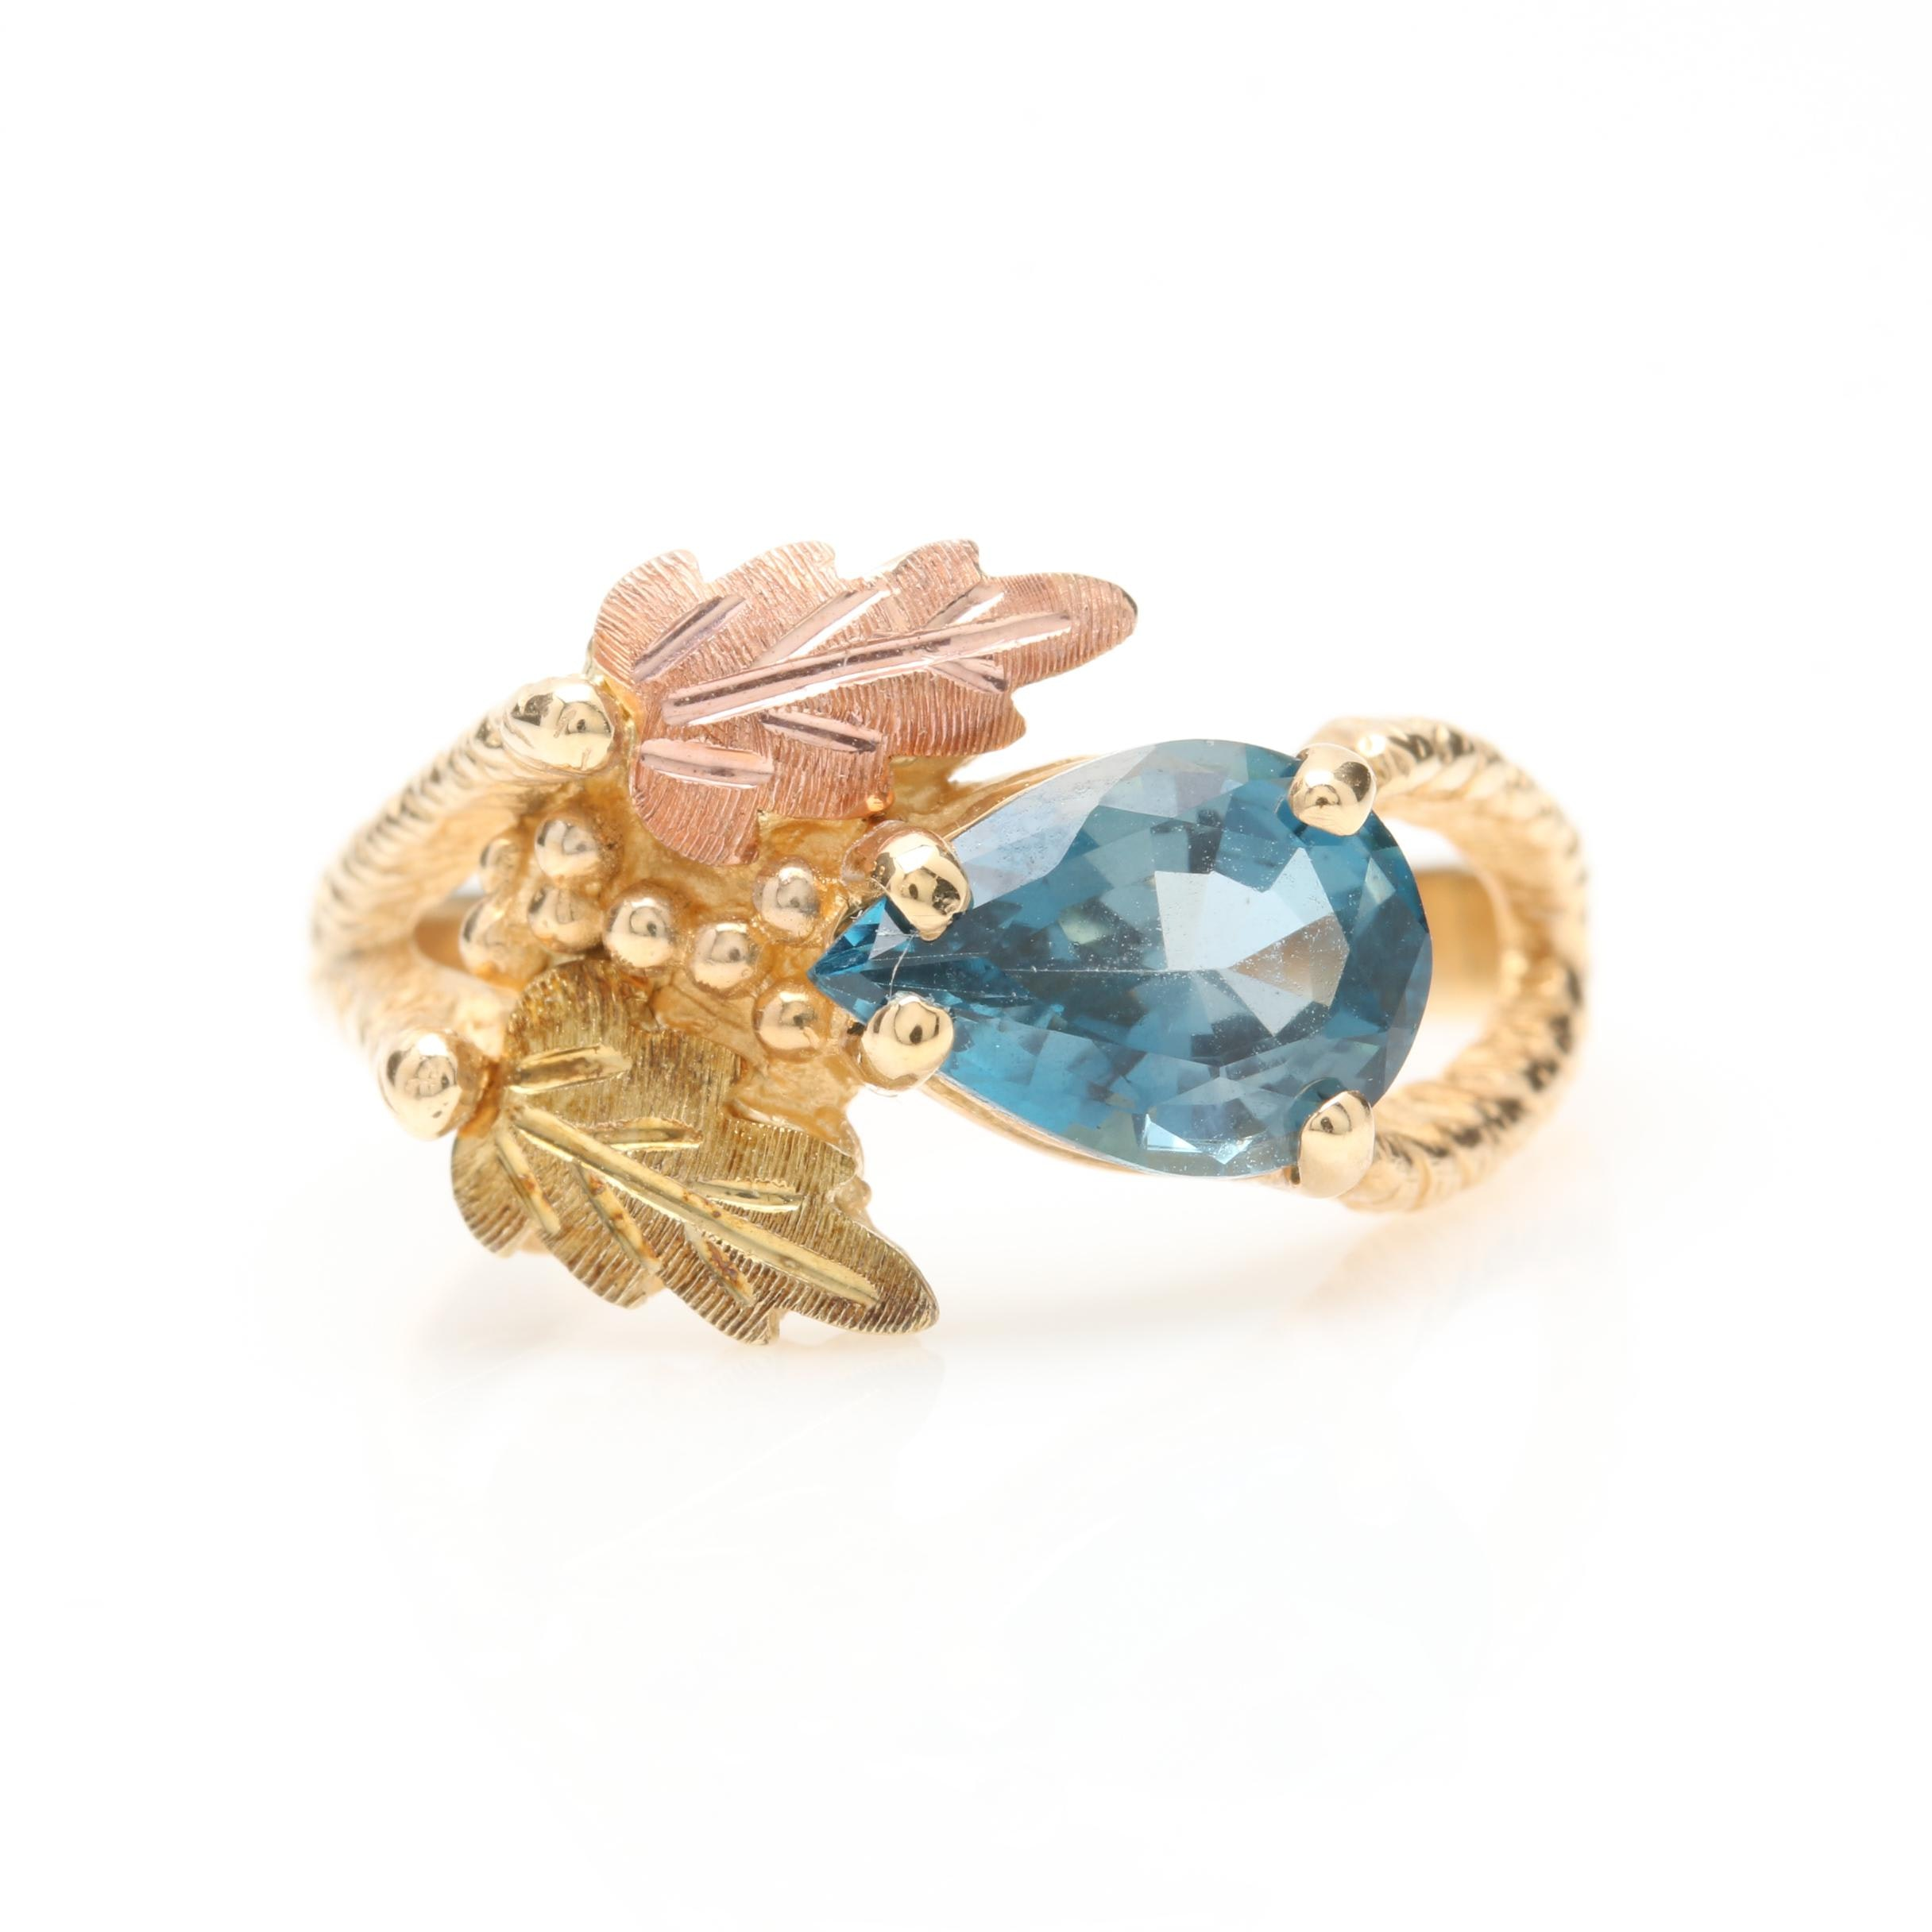 10K Yellow Gold 1.53 CT London Blue Topaz Ring With Rose and Green Gold Accents